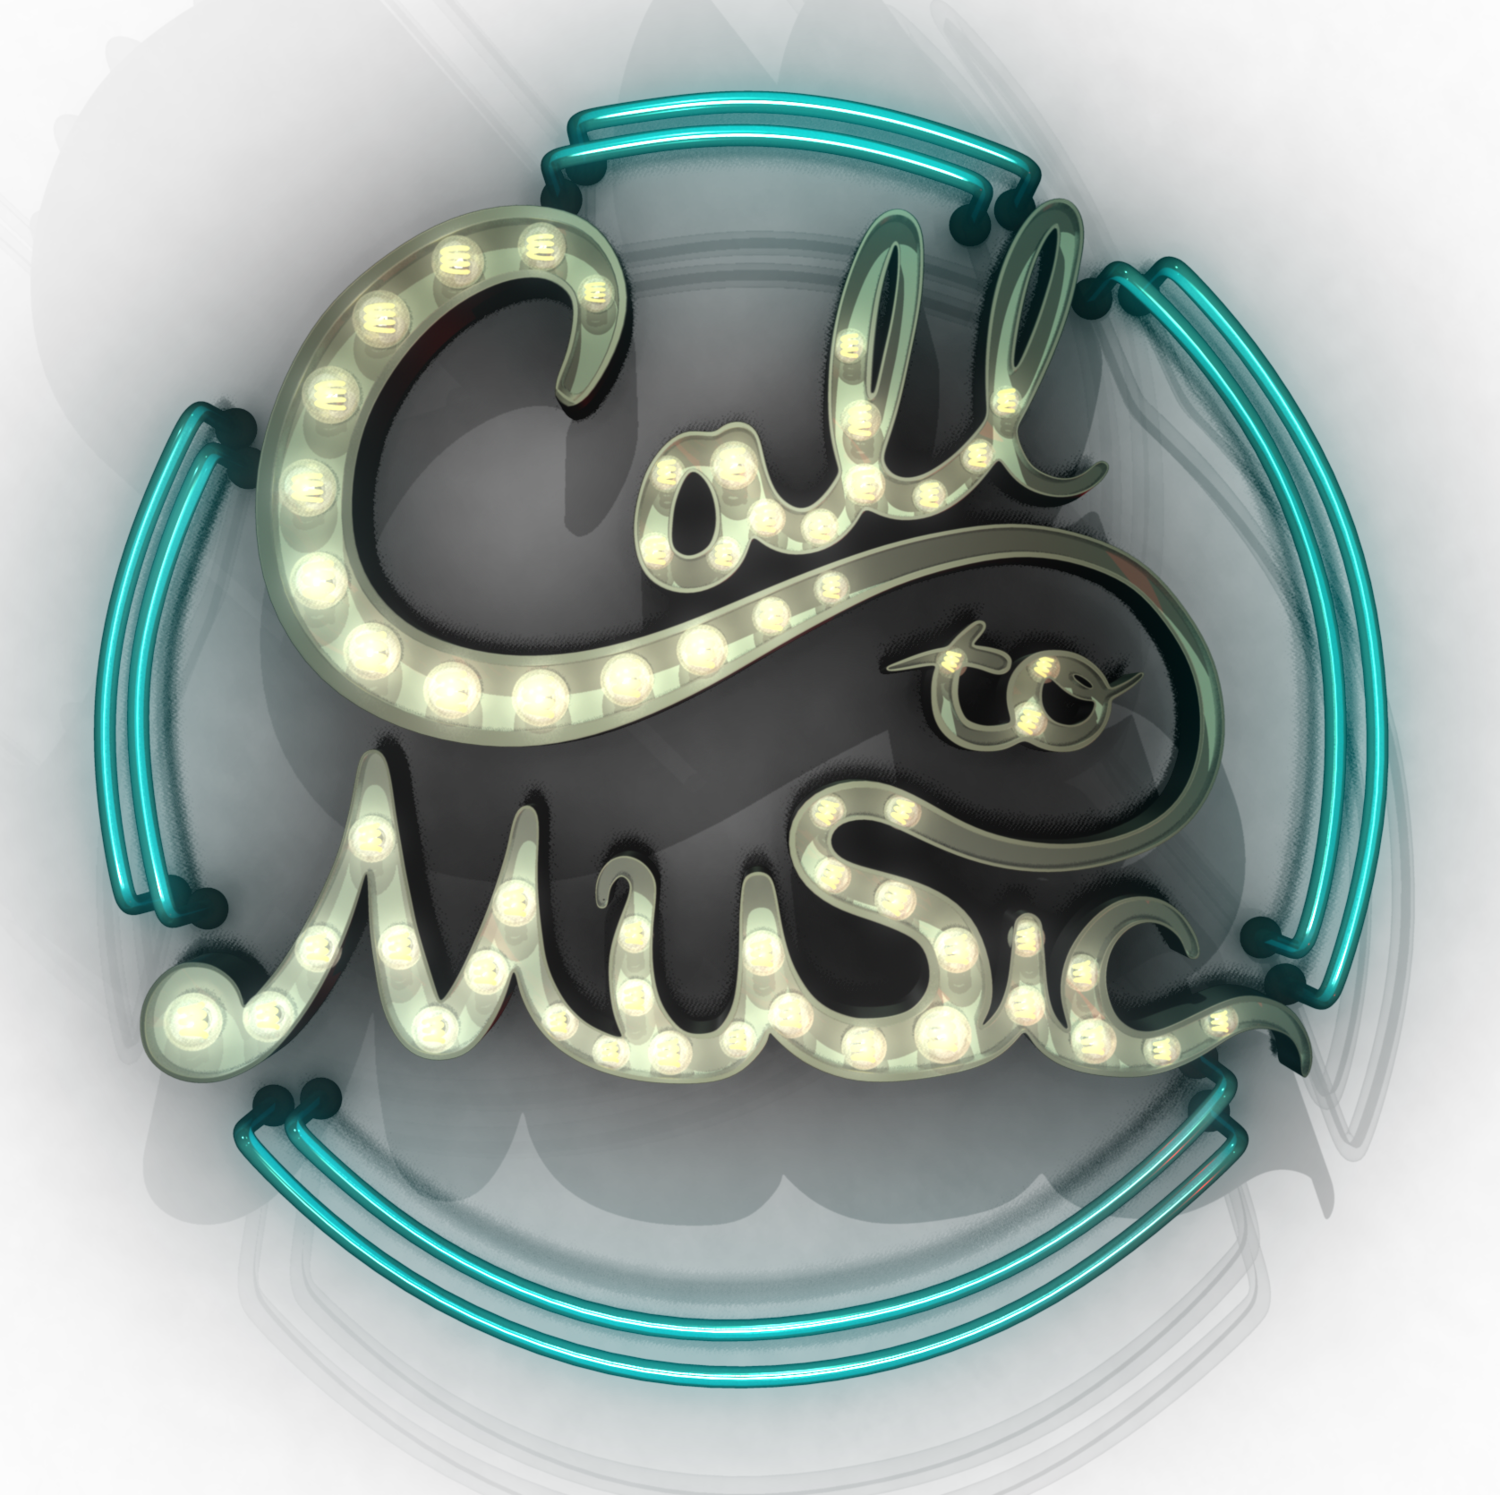 Call to Music